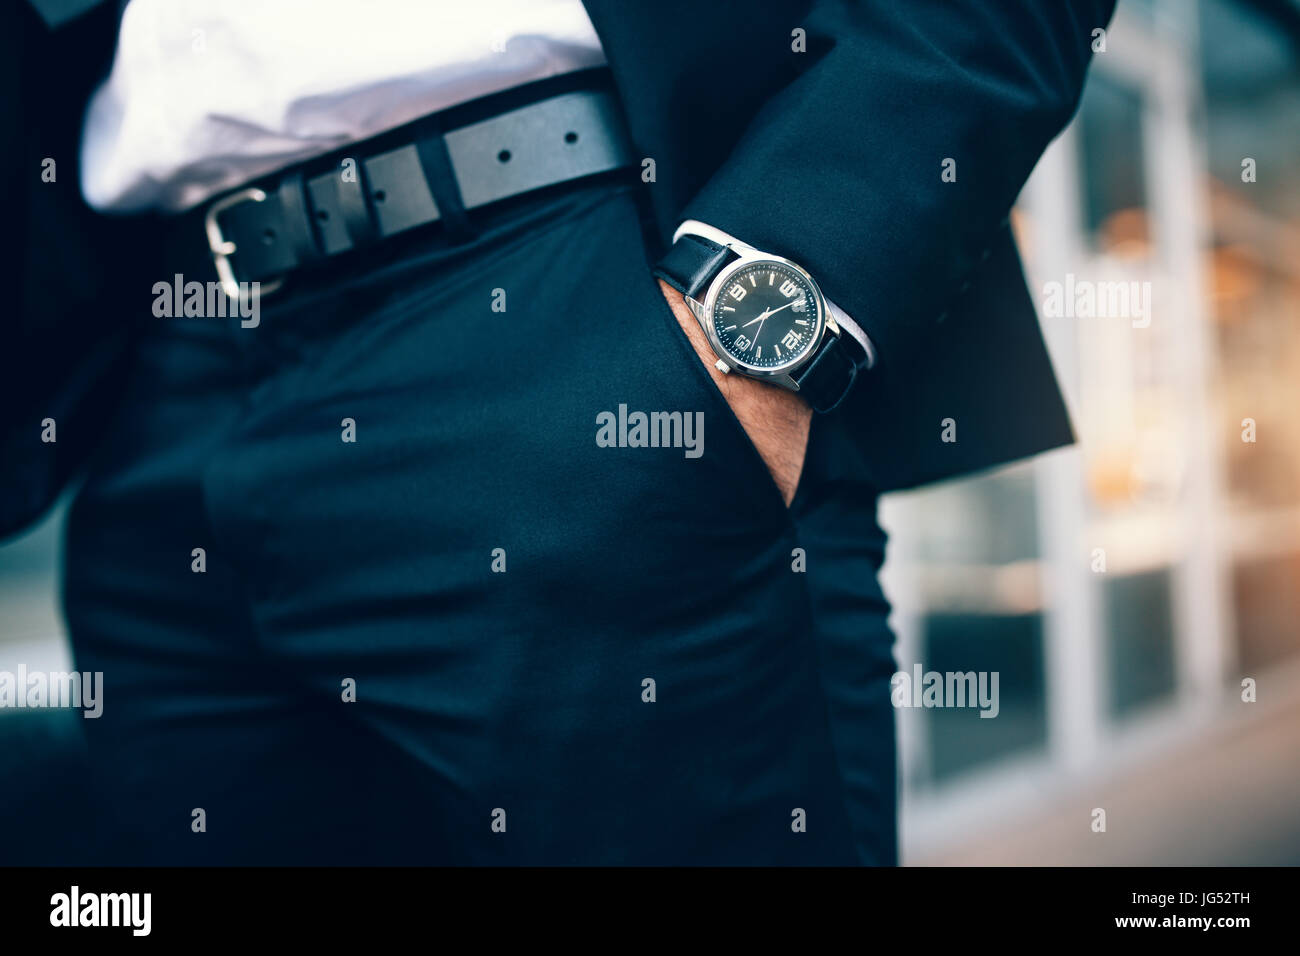 Close up of a business man's hand wearing a watch. Hand in pocket with wrist watch. - Stock Image